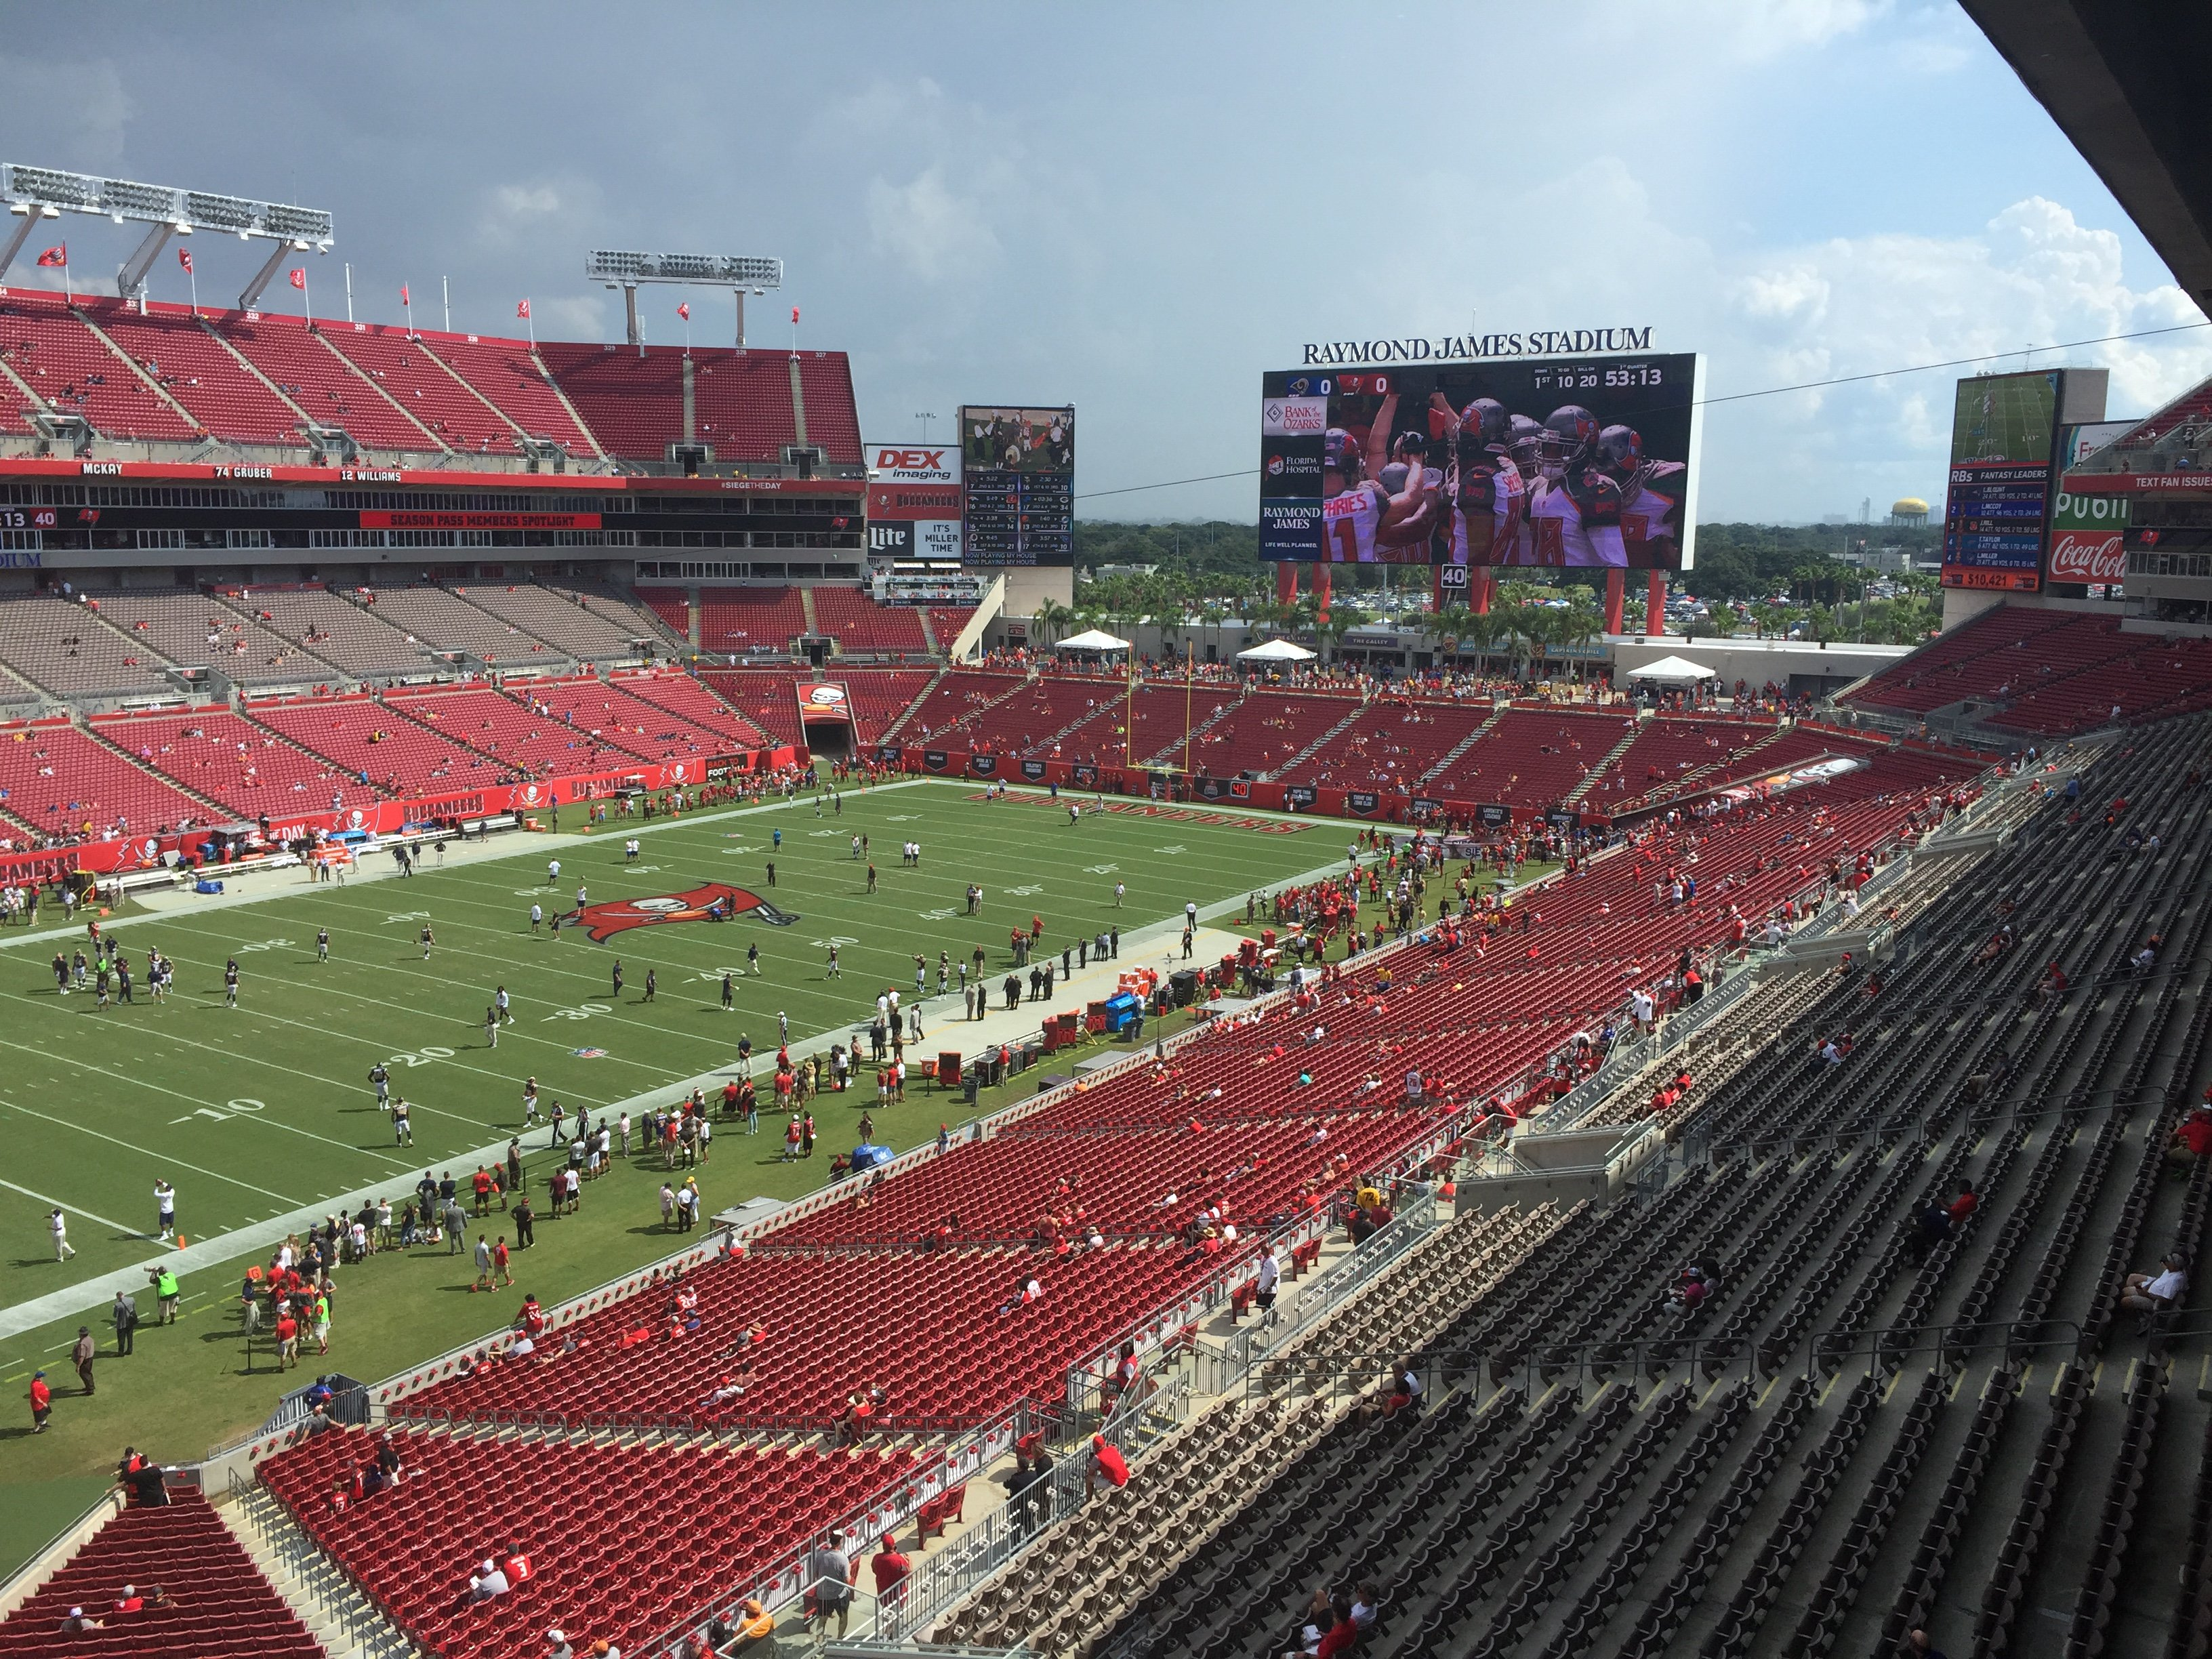 The field at Raymond James Stadium in Tampa Bay, Florida